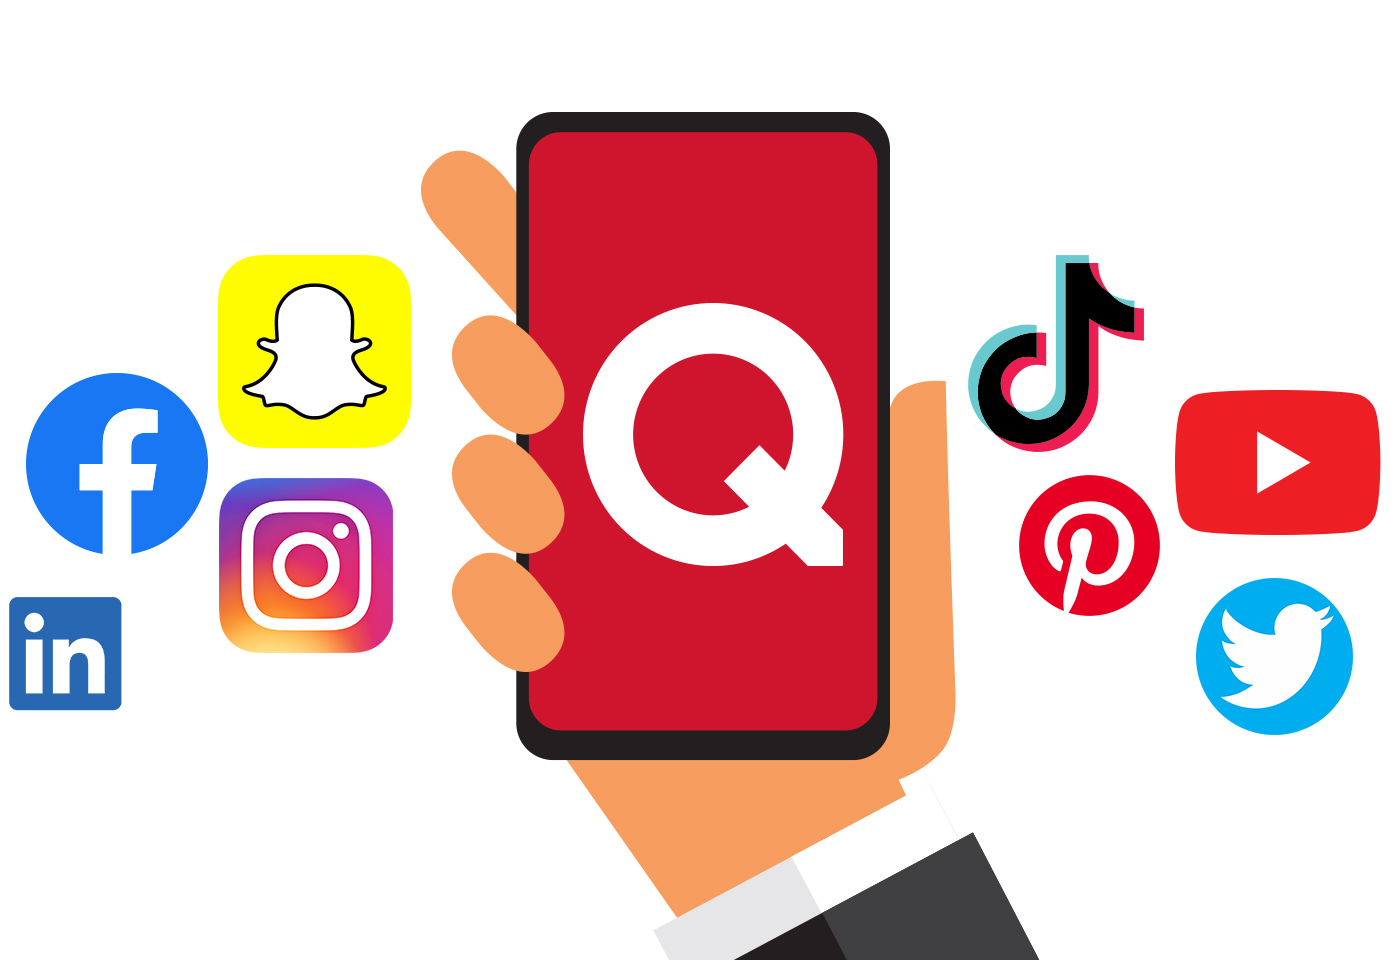 Social media accounts. Facebook, Snapchat, Instagram, Linkedin, TikTok, Pinterest, Youtube, Twitter. The Quell Group